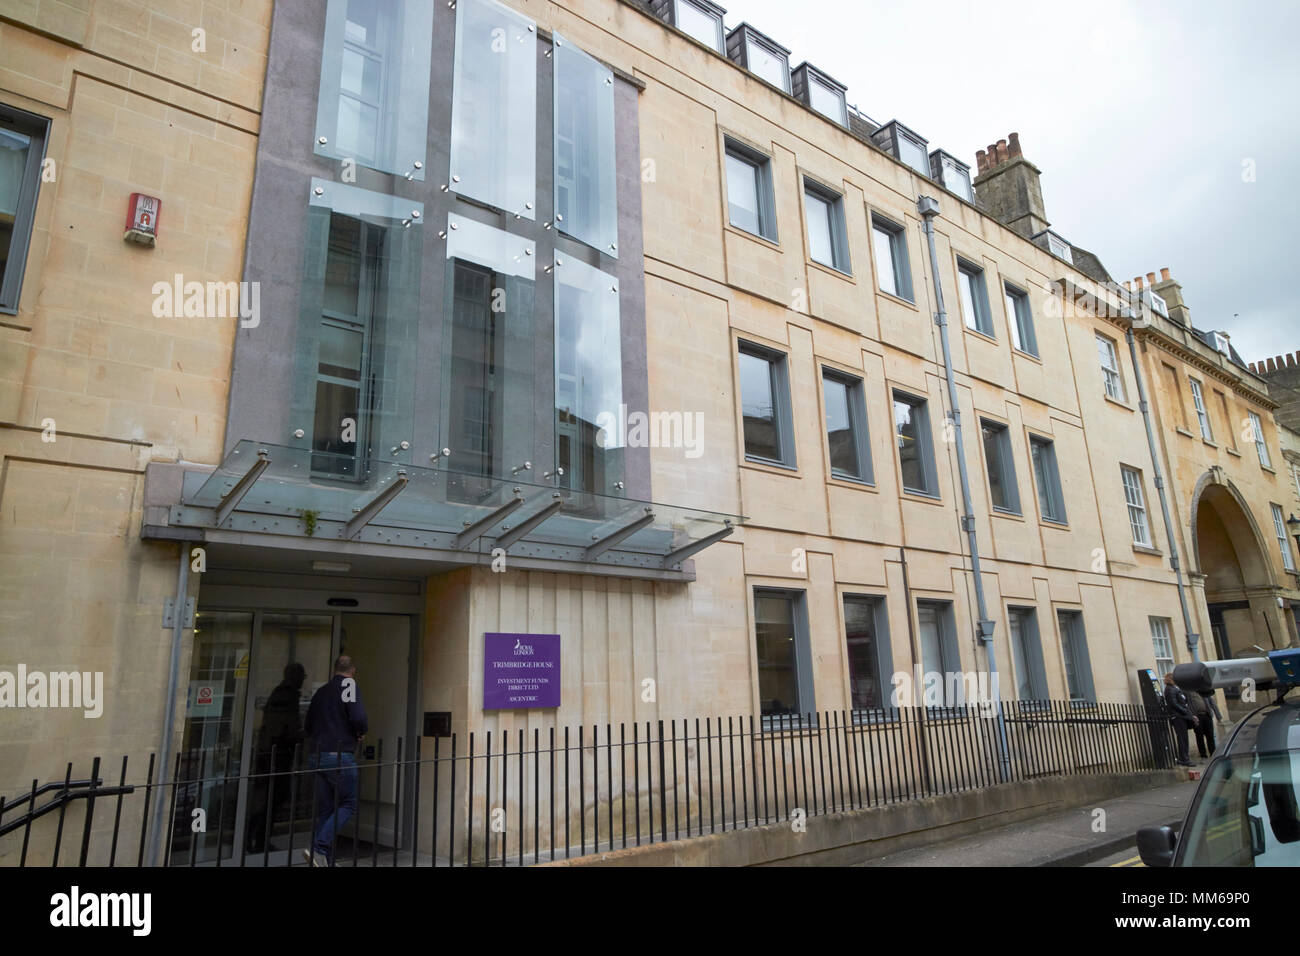 Trimbridge house office building in Bath home to financial services companies royal london ascentric and investment funds direct ltd England UK - Stock Image